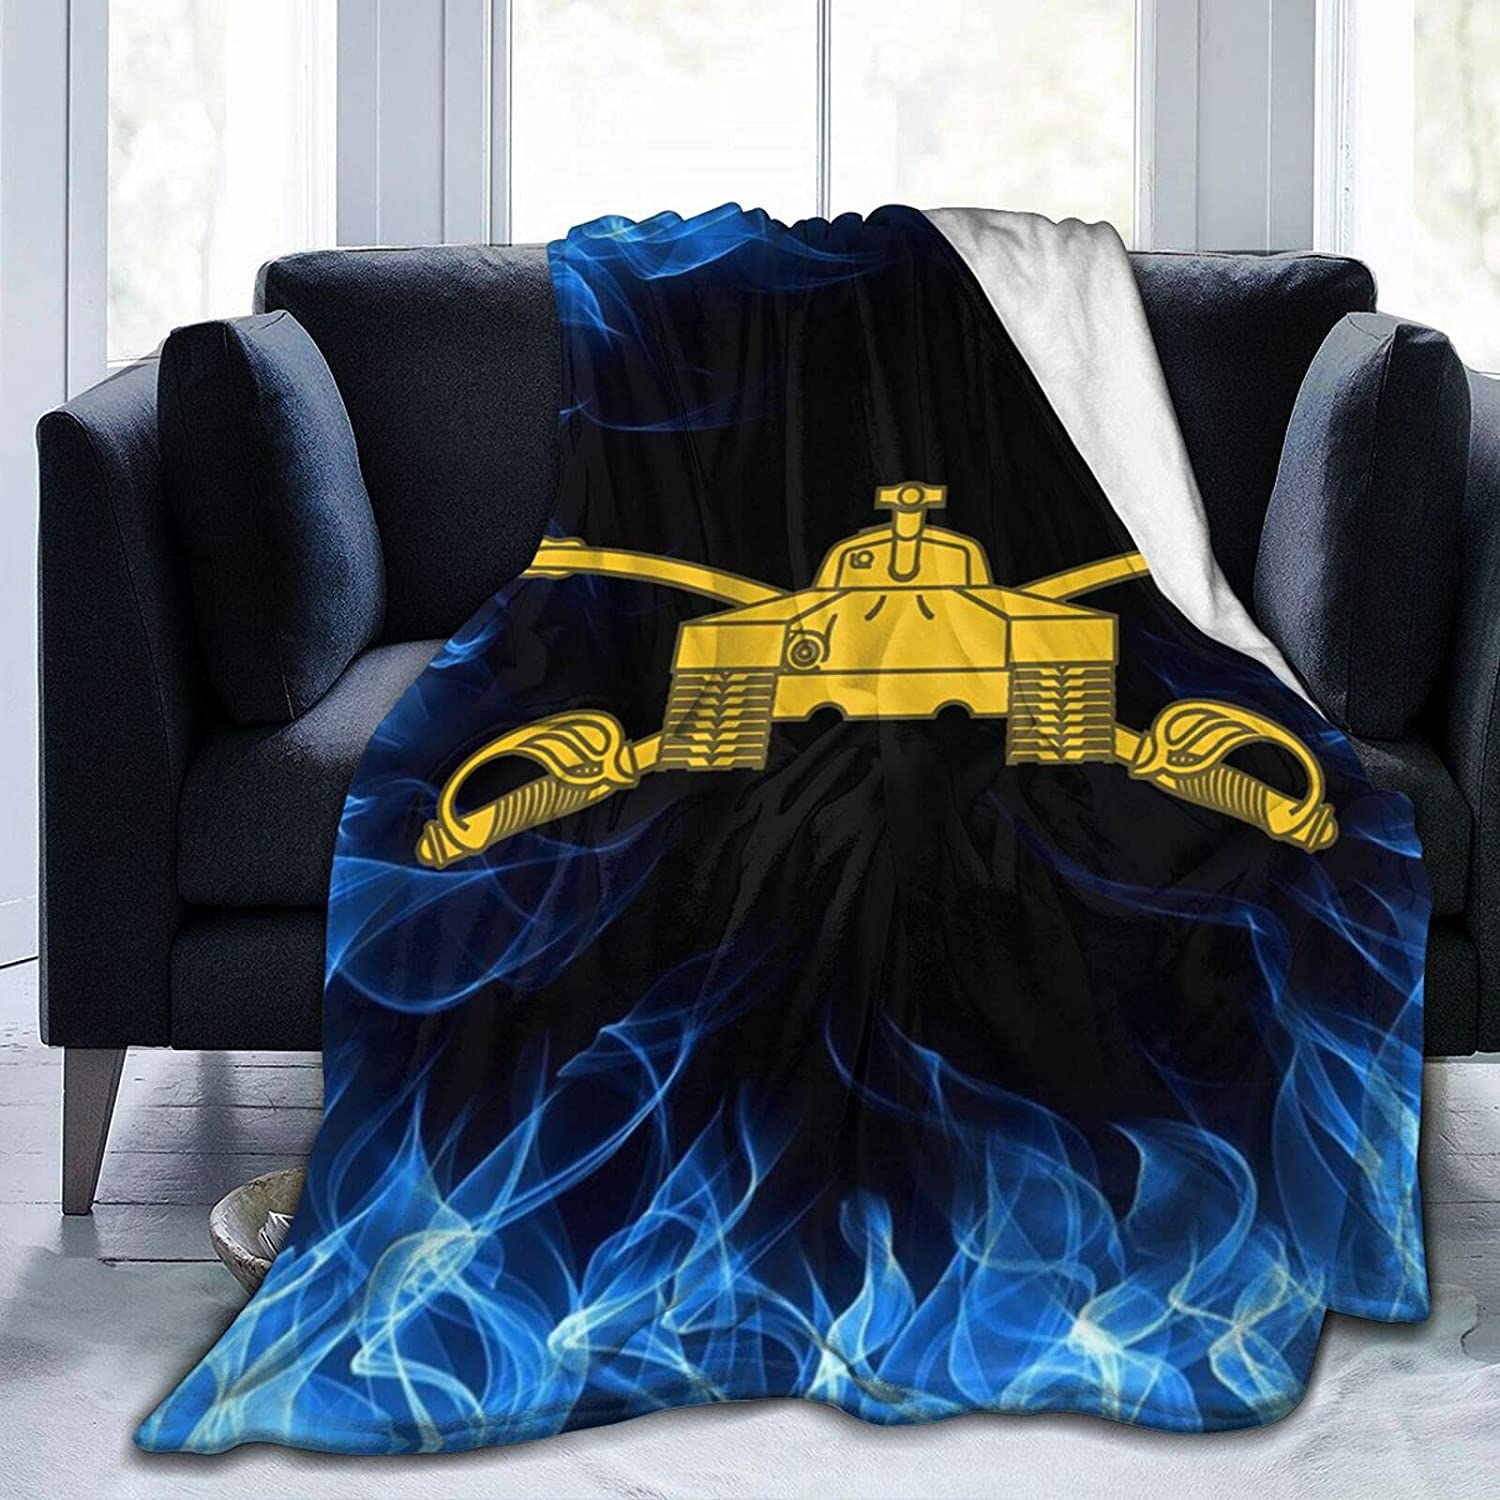 Be super welcome Army Armor High material Branch Insignia Military Prin Veteran Blanket Flannel